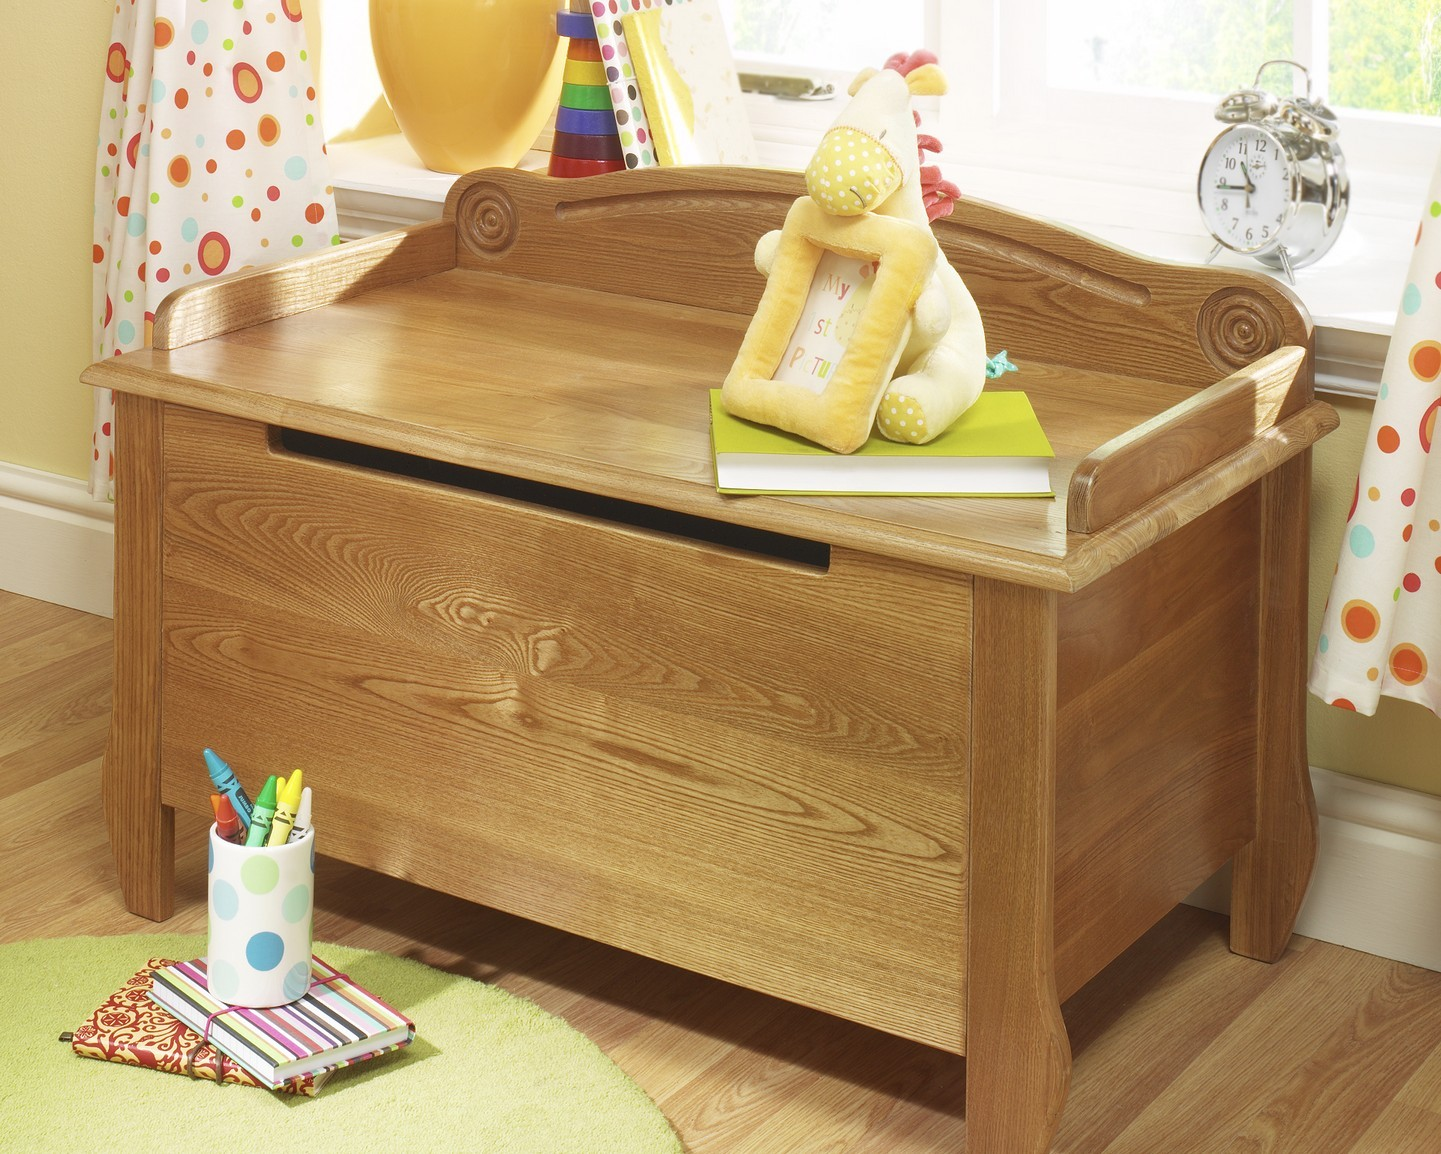 Best Toy Boxes And Chests For Kids : Children s toy box worth £ of toys